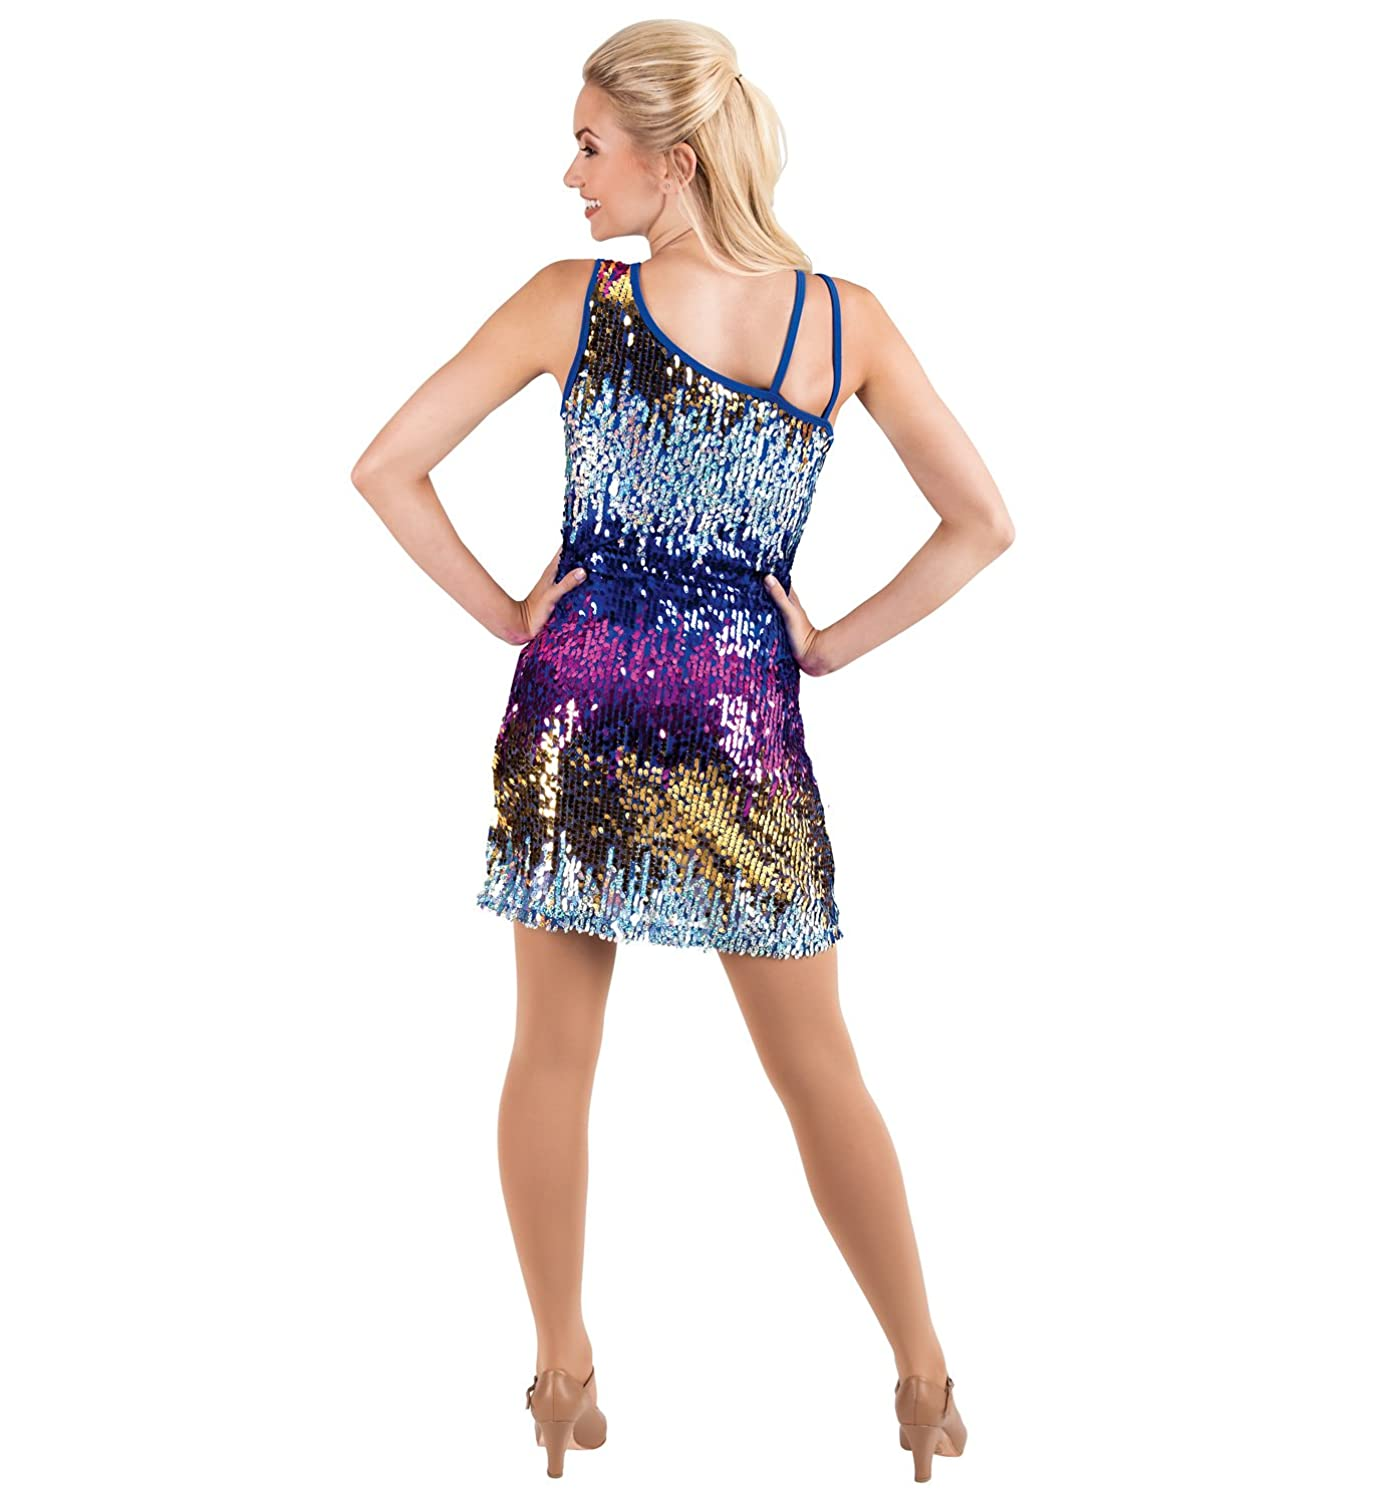 Amazon.com: Adult Sequin One Shoulder Dress,N7040: Clothing